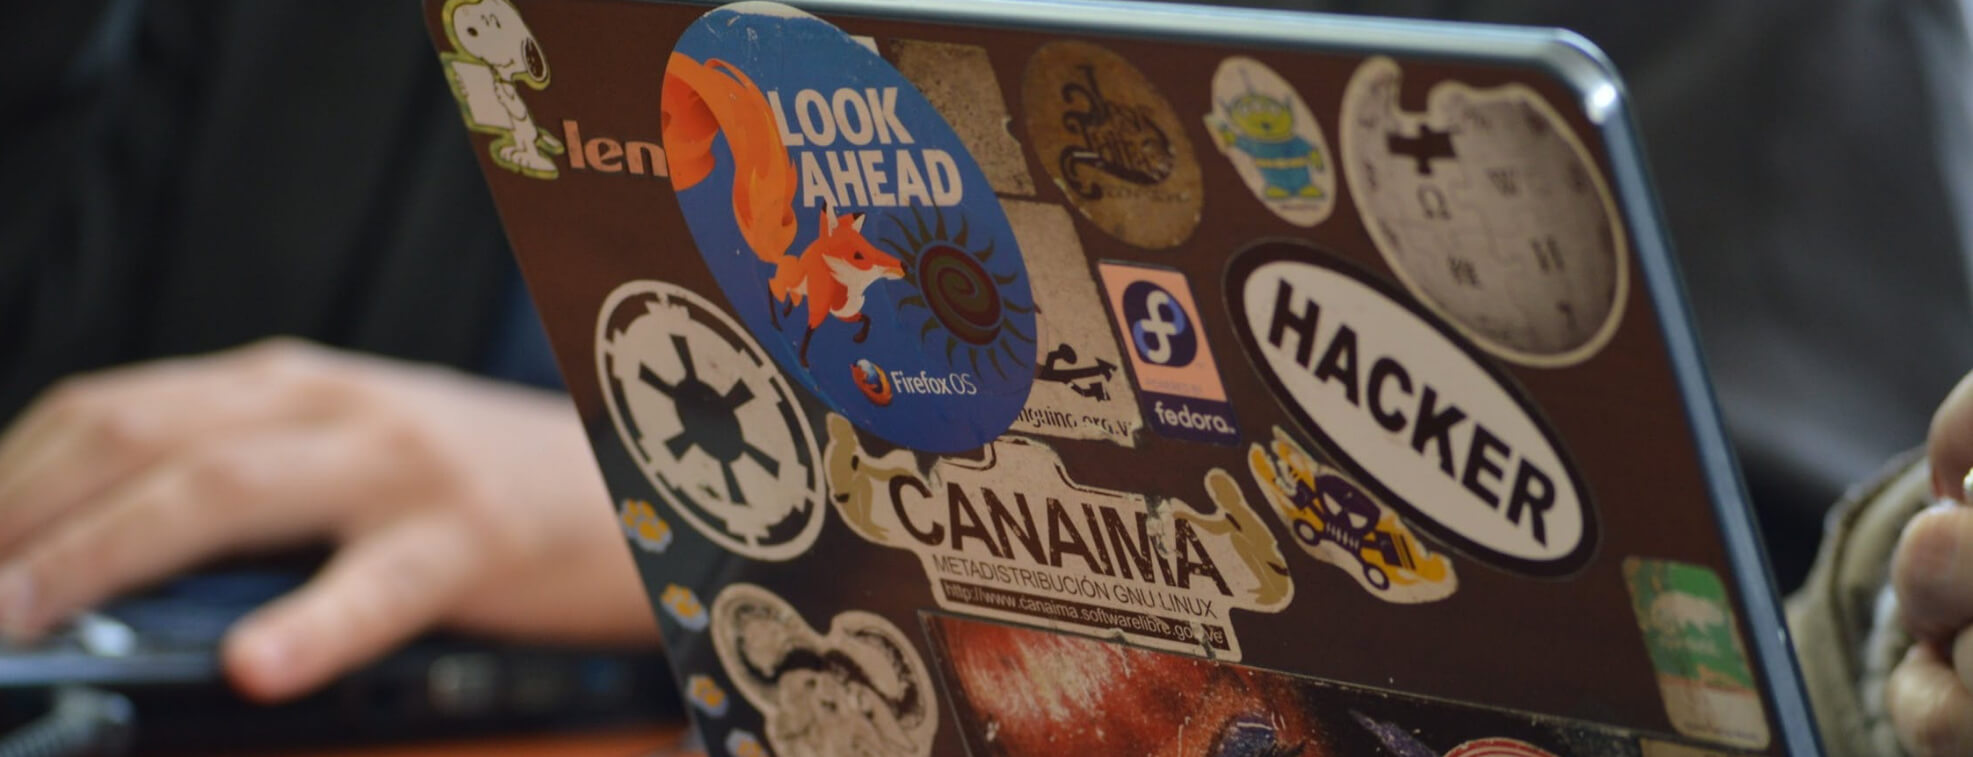 Laptop covered with stickers